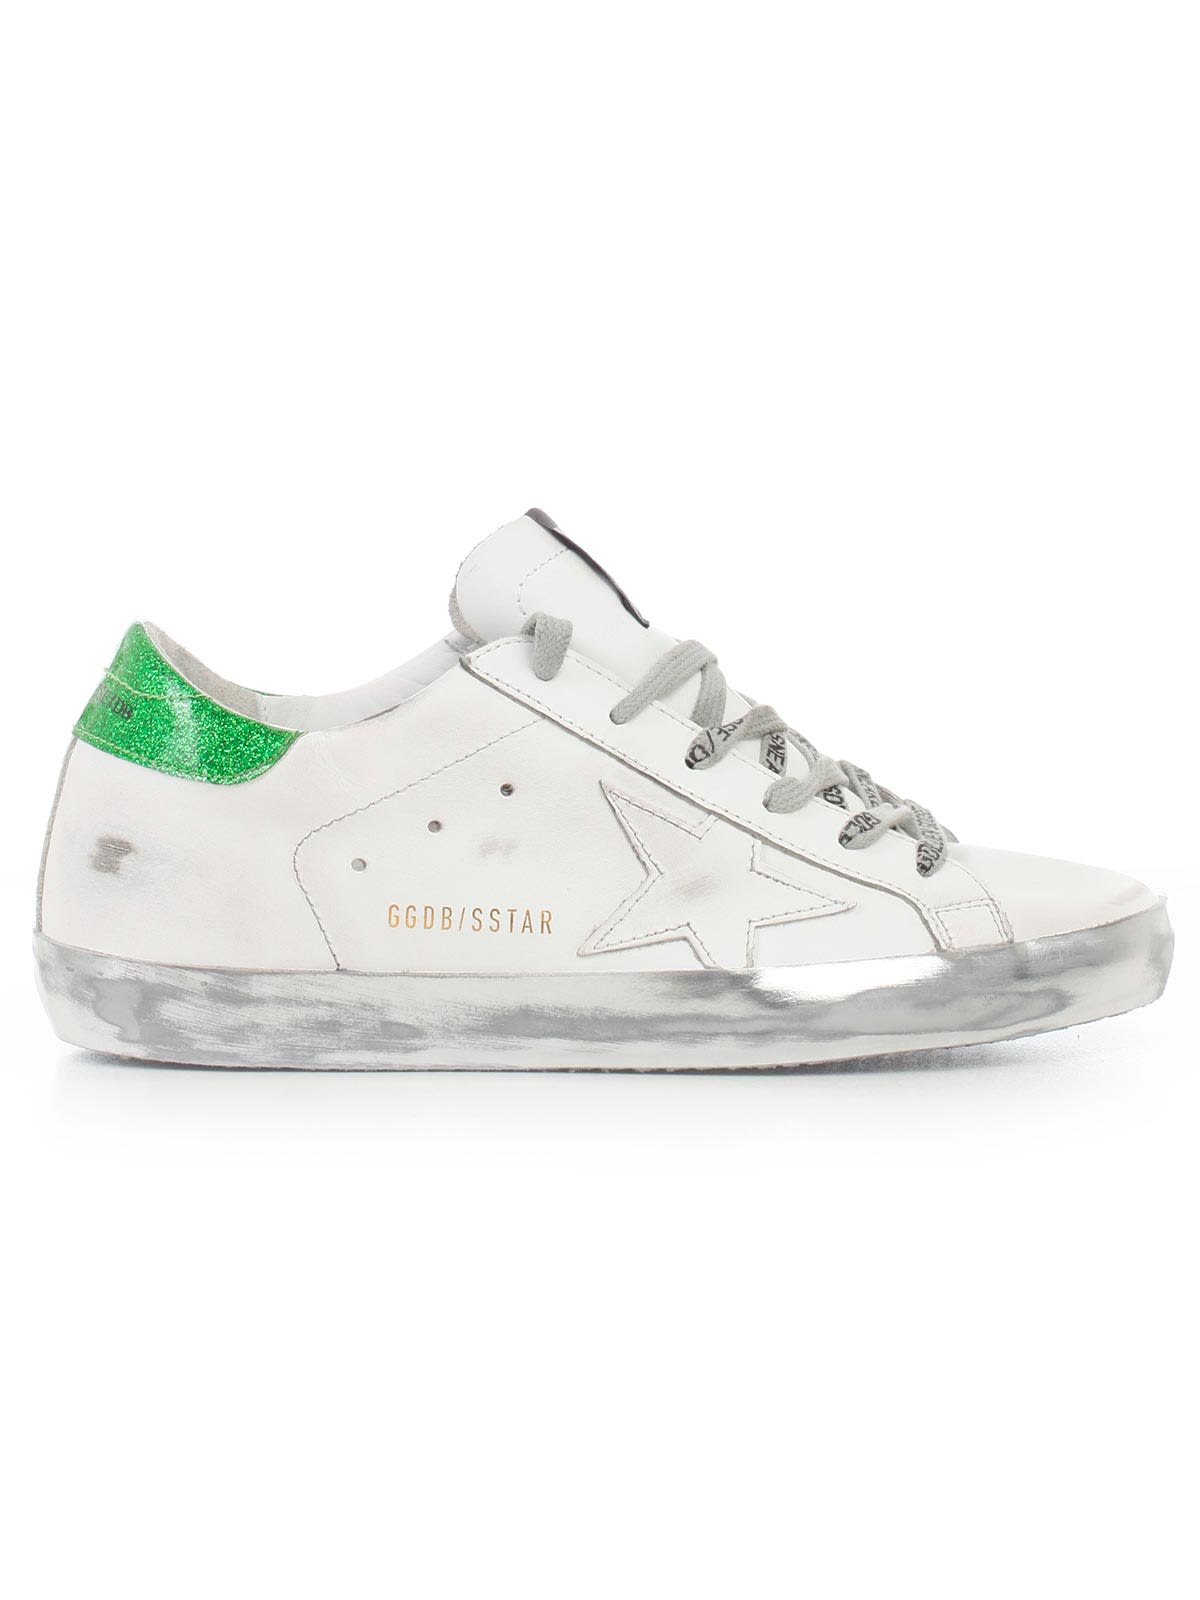 brand new a0086 8fabb Golden Goose Deluxe Brand Superstar Sneakers - White Sparkle Green Ggdb  Lace ...